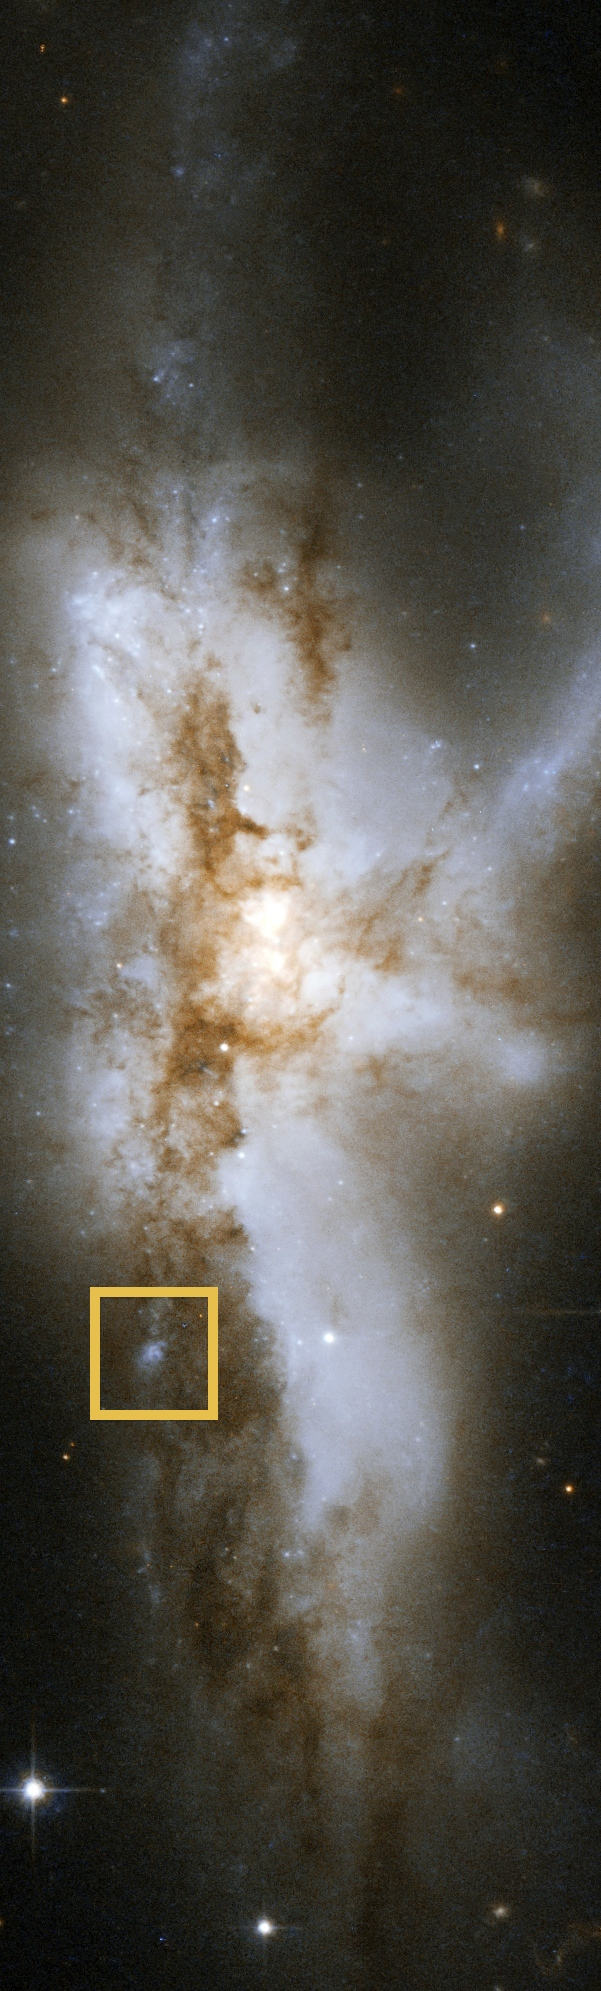 Image credit: NASA, ESA, the Hubble Heritage (STScI/AURA)-ESA/Hubble Collaboration, and A. Evans (University of Virginia, Charlottesville/NRAO/Stony Brook University).